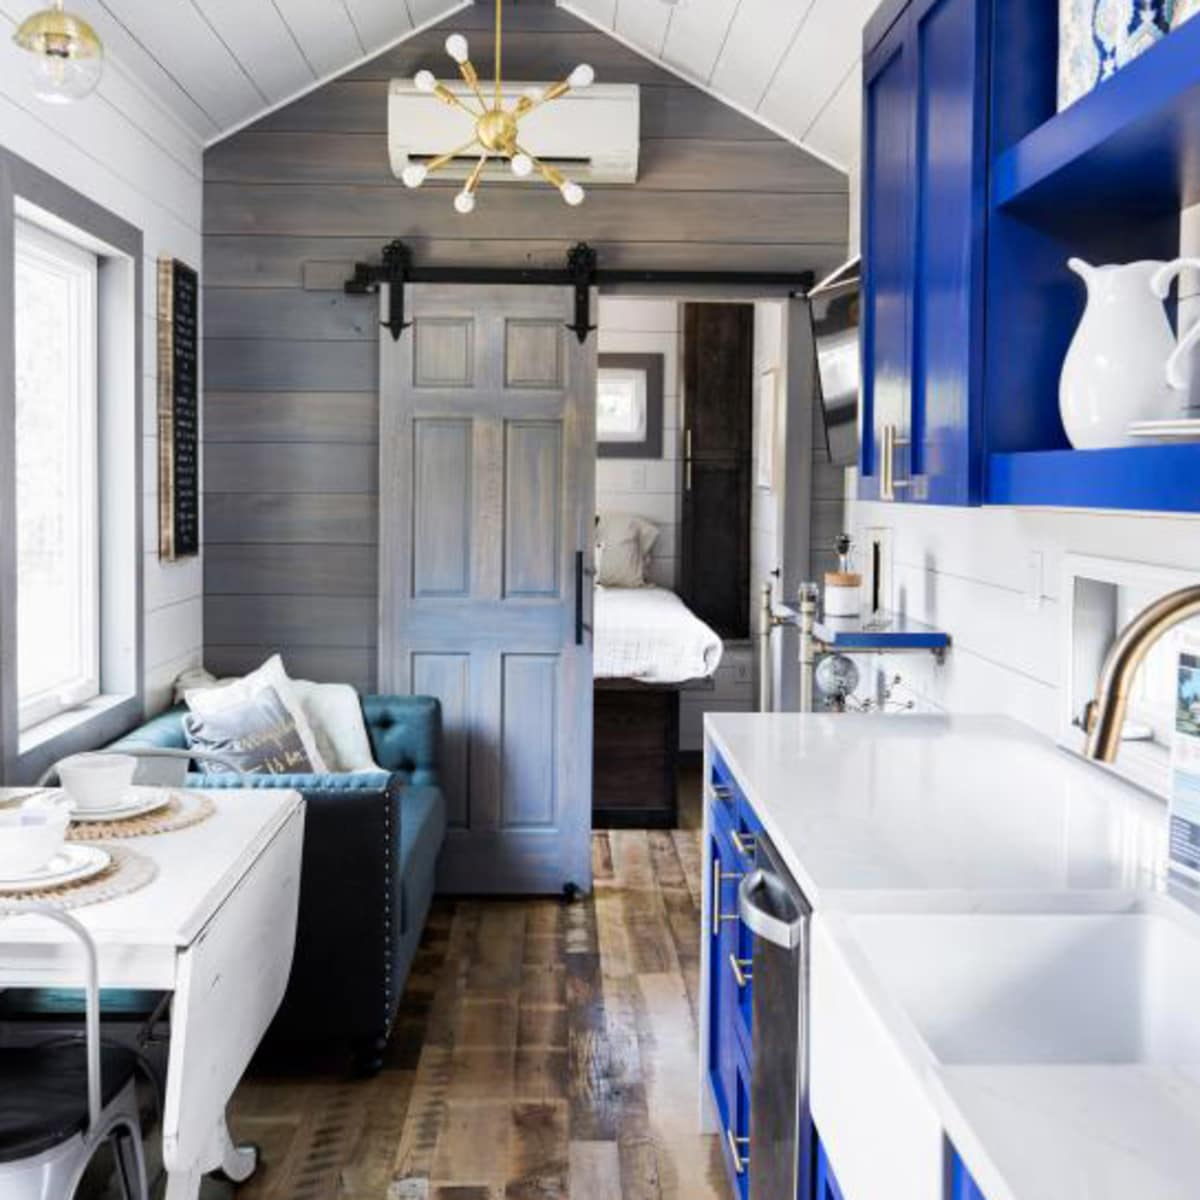 Tiny House Appliances >> If You Re Moving To A Tiny House You Need These 7 Kitchen Appliances